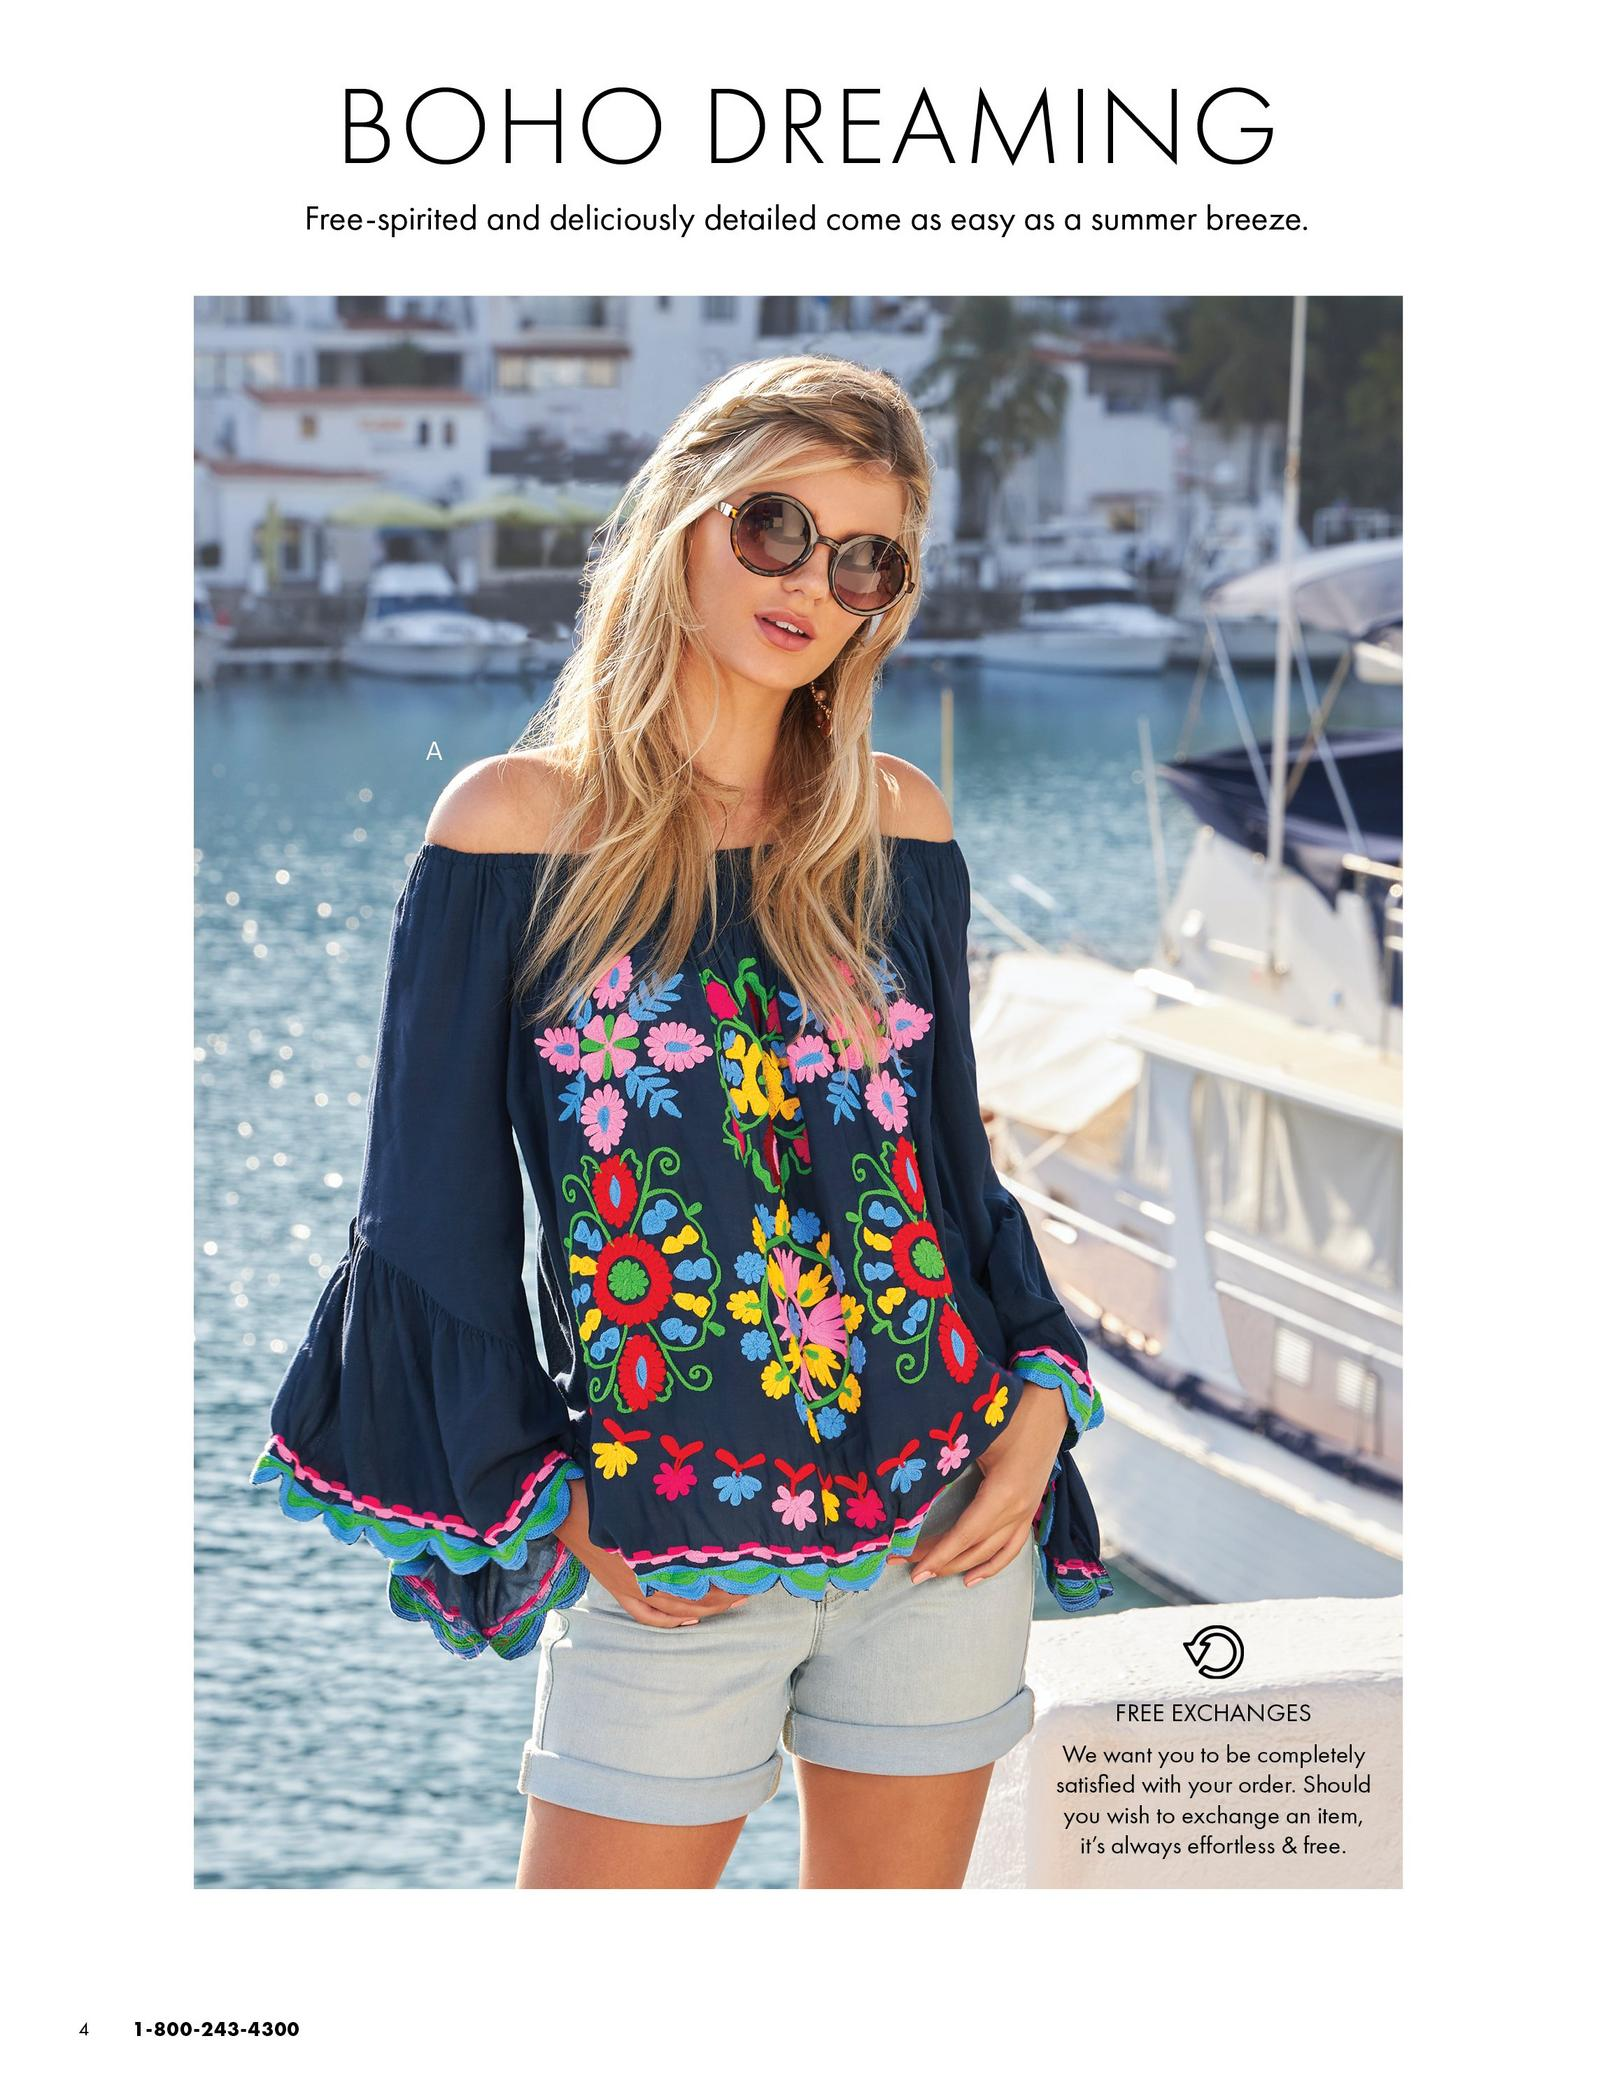 model wearing a navy off-the-shoulder bell-sleeve boho top with floral embroidery, denim shorts, and sunglasses.